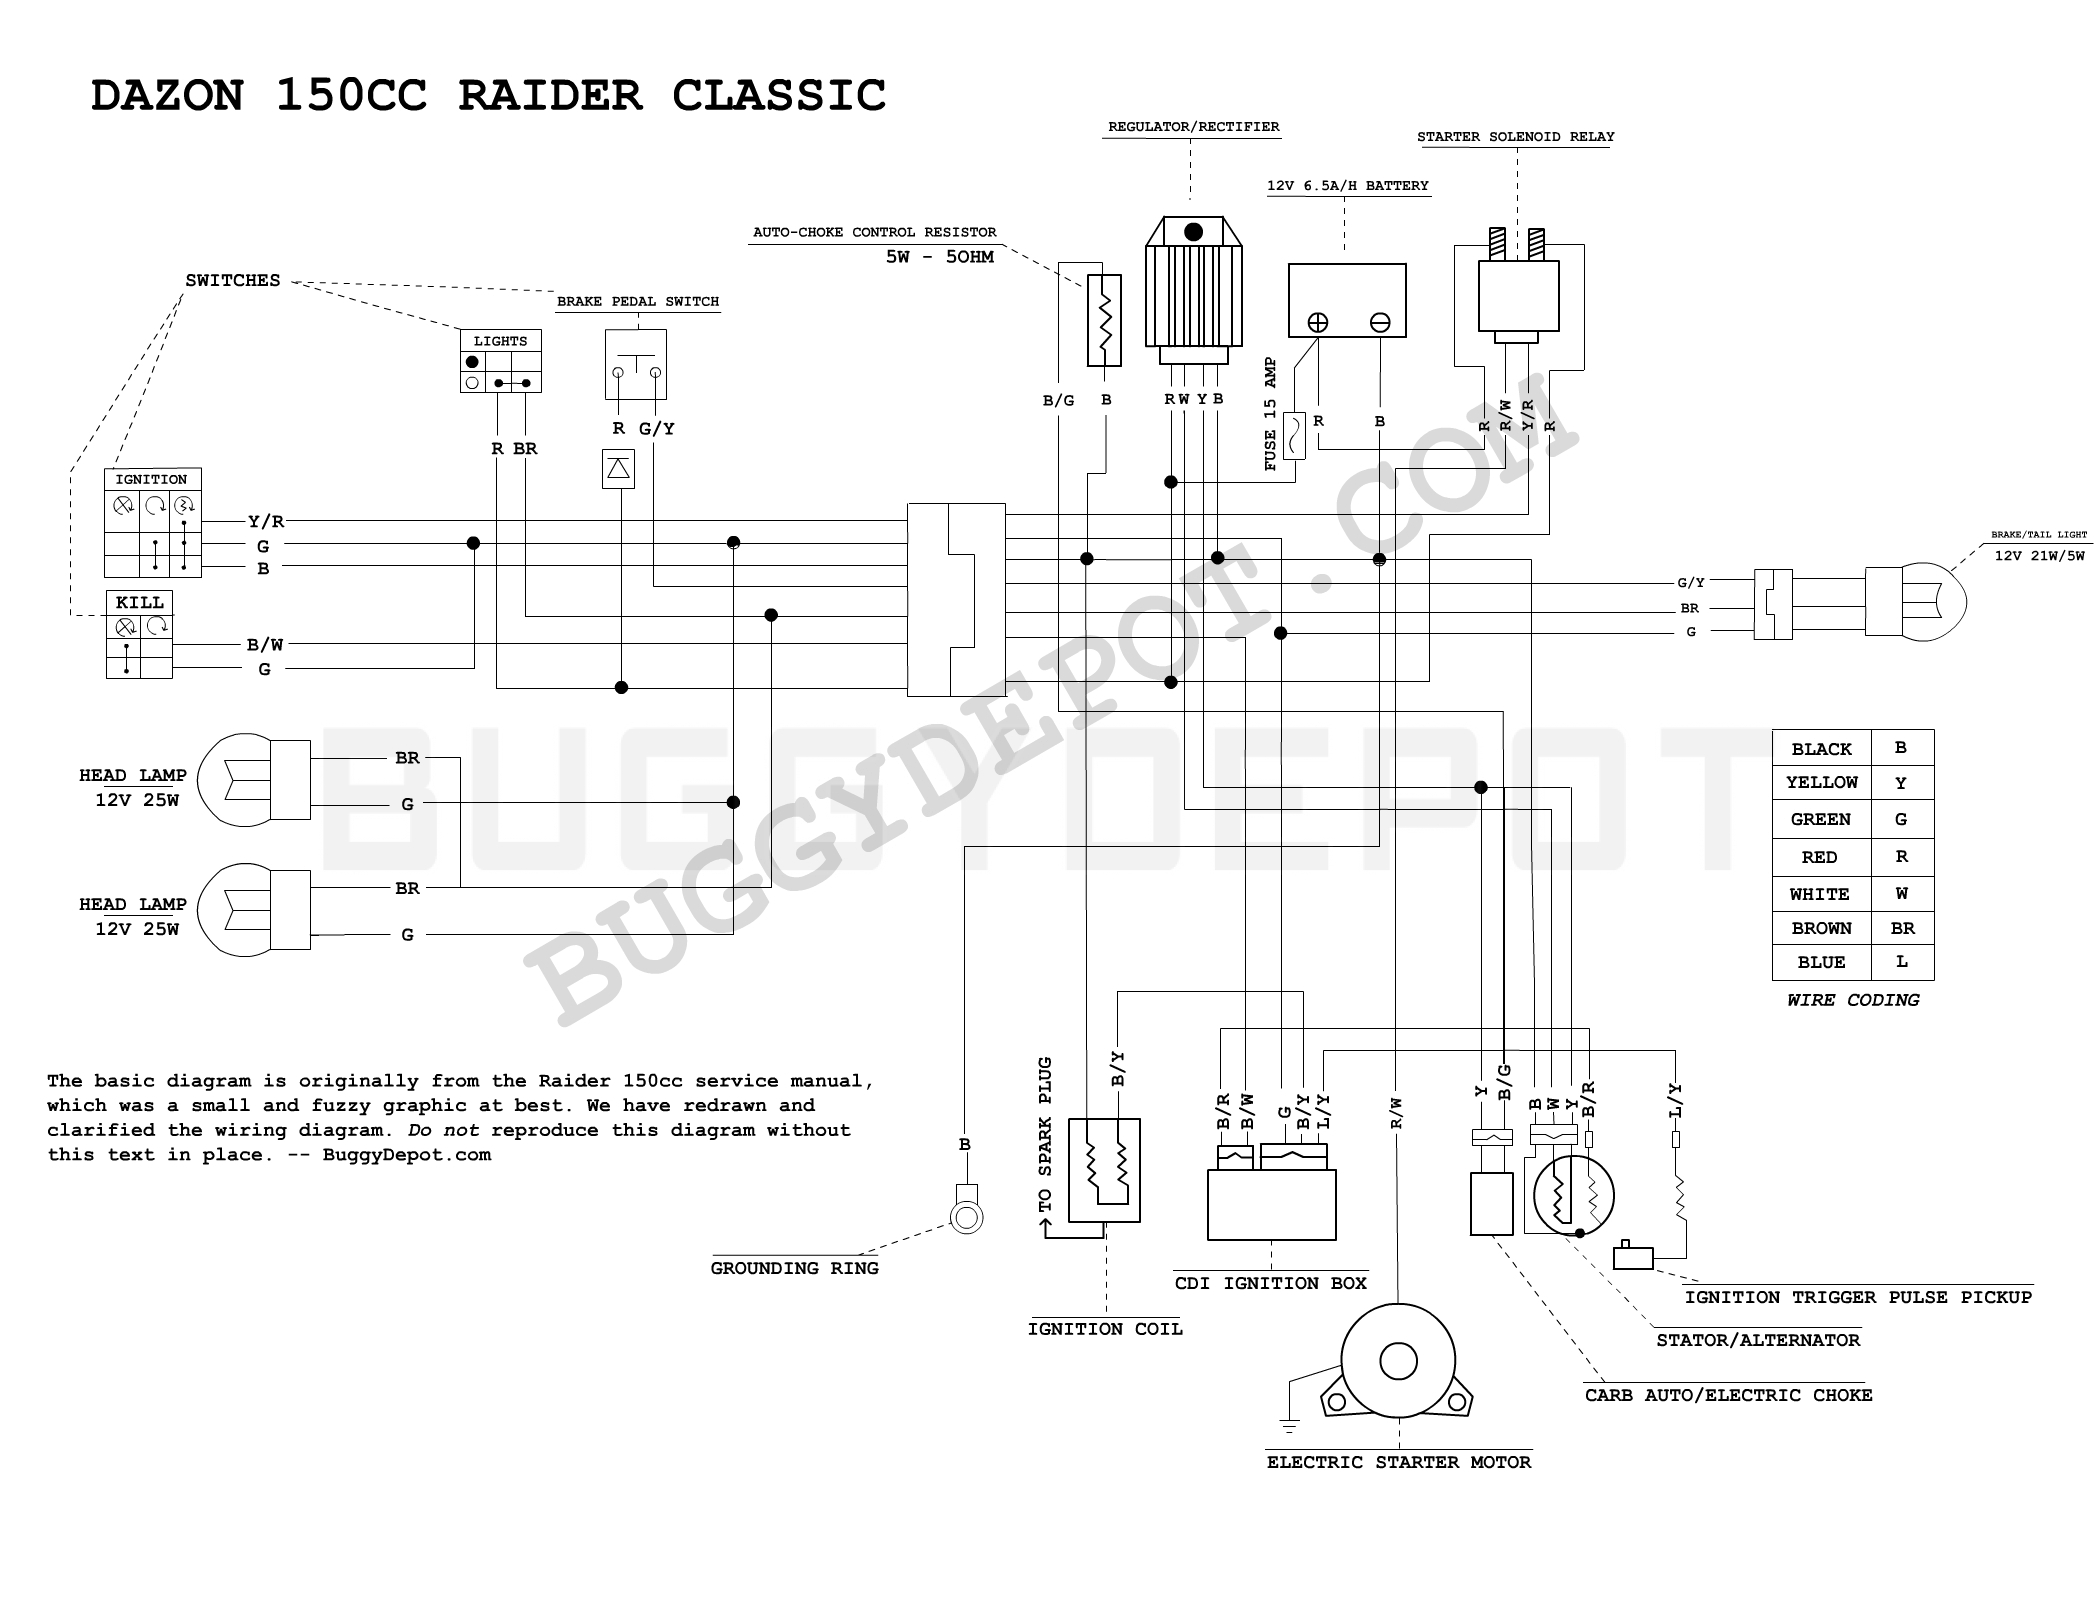 article_33_1278205207 dazon raider classic wiring diagram buggy depot technical center Stator Assembly at edmiracle.co